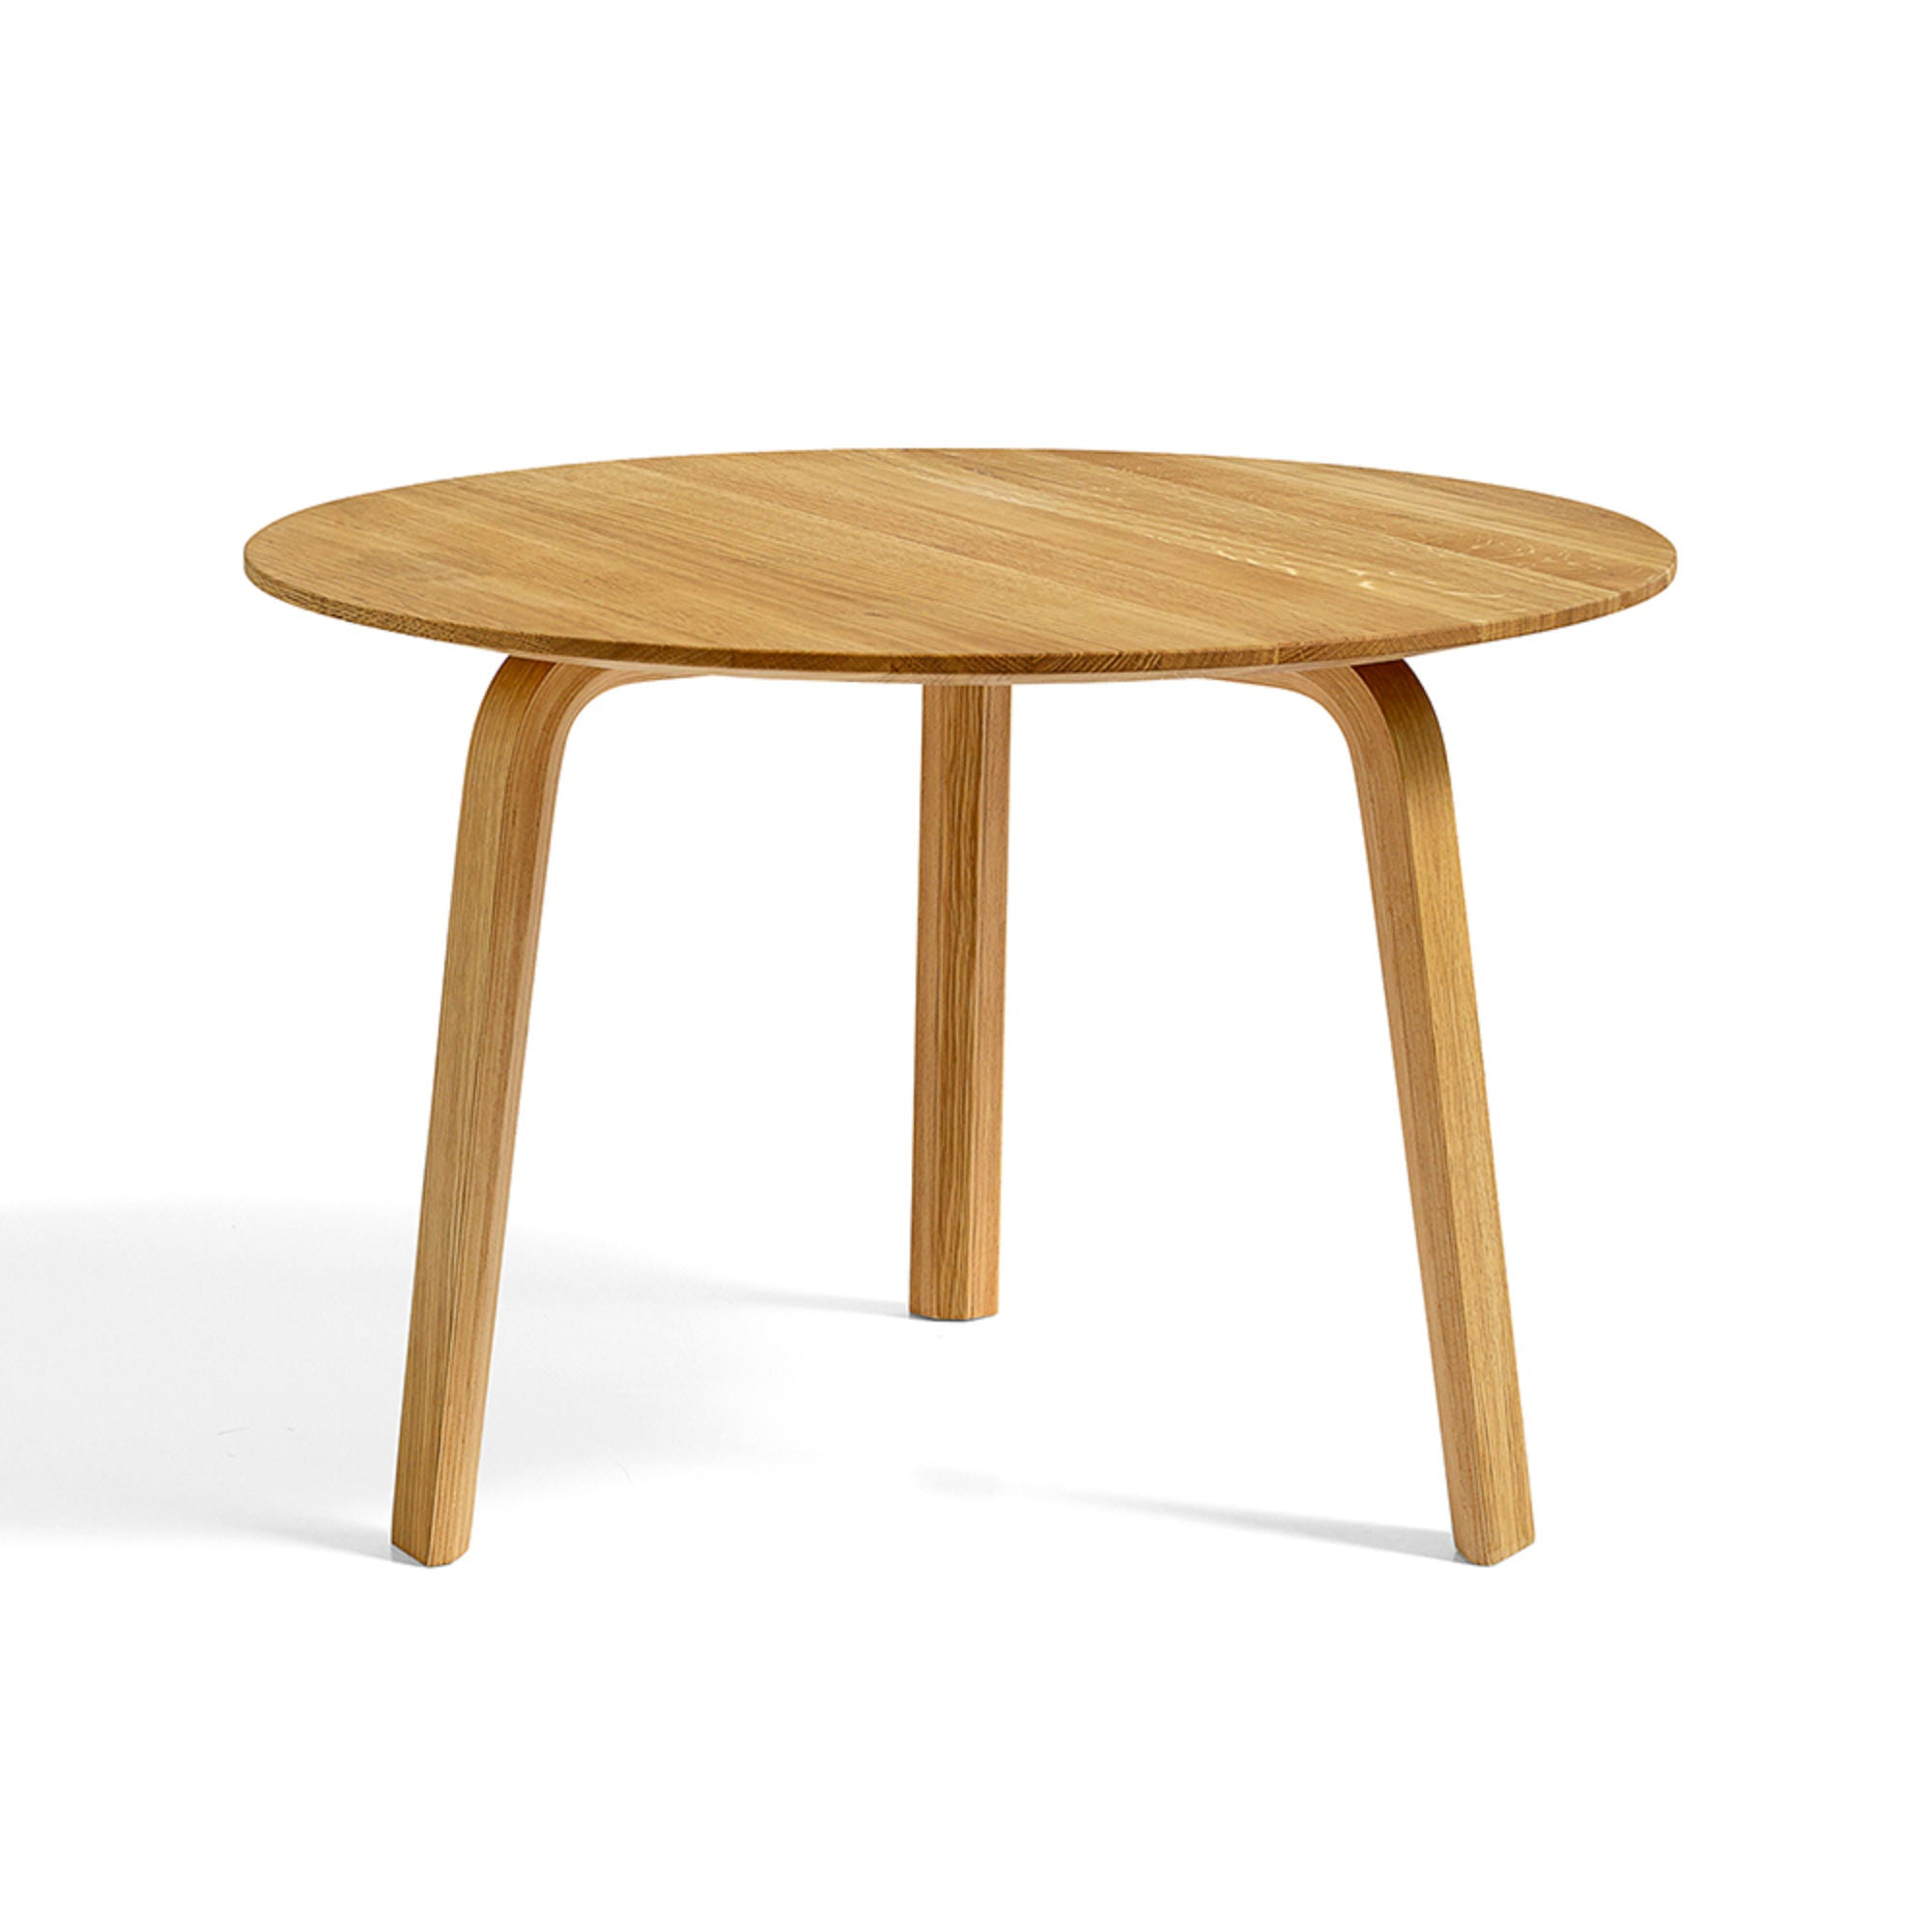 Bella Coffee Table Φ60 x H39, Oiled Oak